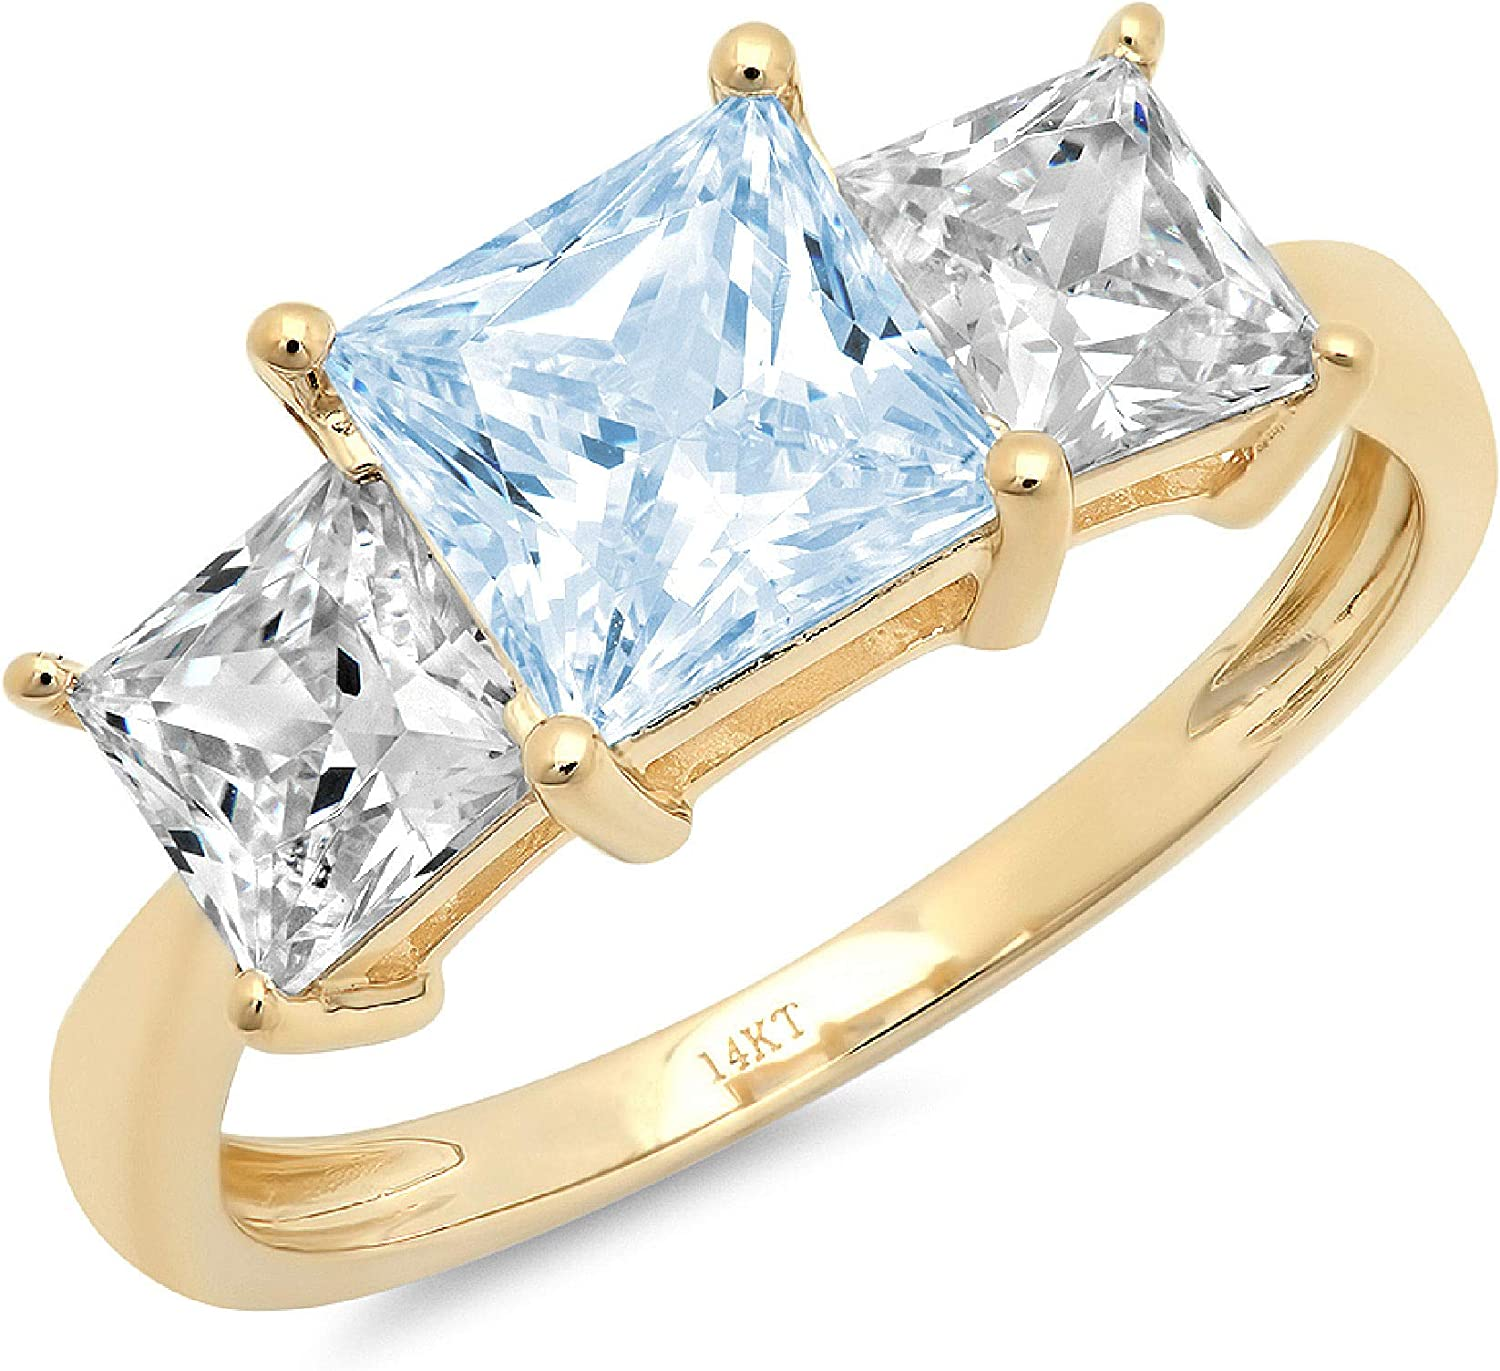 3.0ct Brilliant Princess Cut 3 Stone Solitaire with Accent Natural Swiss Blue Topaz Gemstone Ideal VVS1 Engagement Promise Anniversary Bridal Wedding Ring 14k Yellow Gold